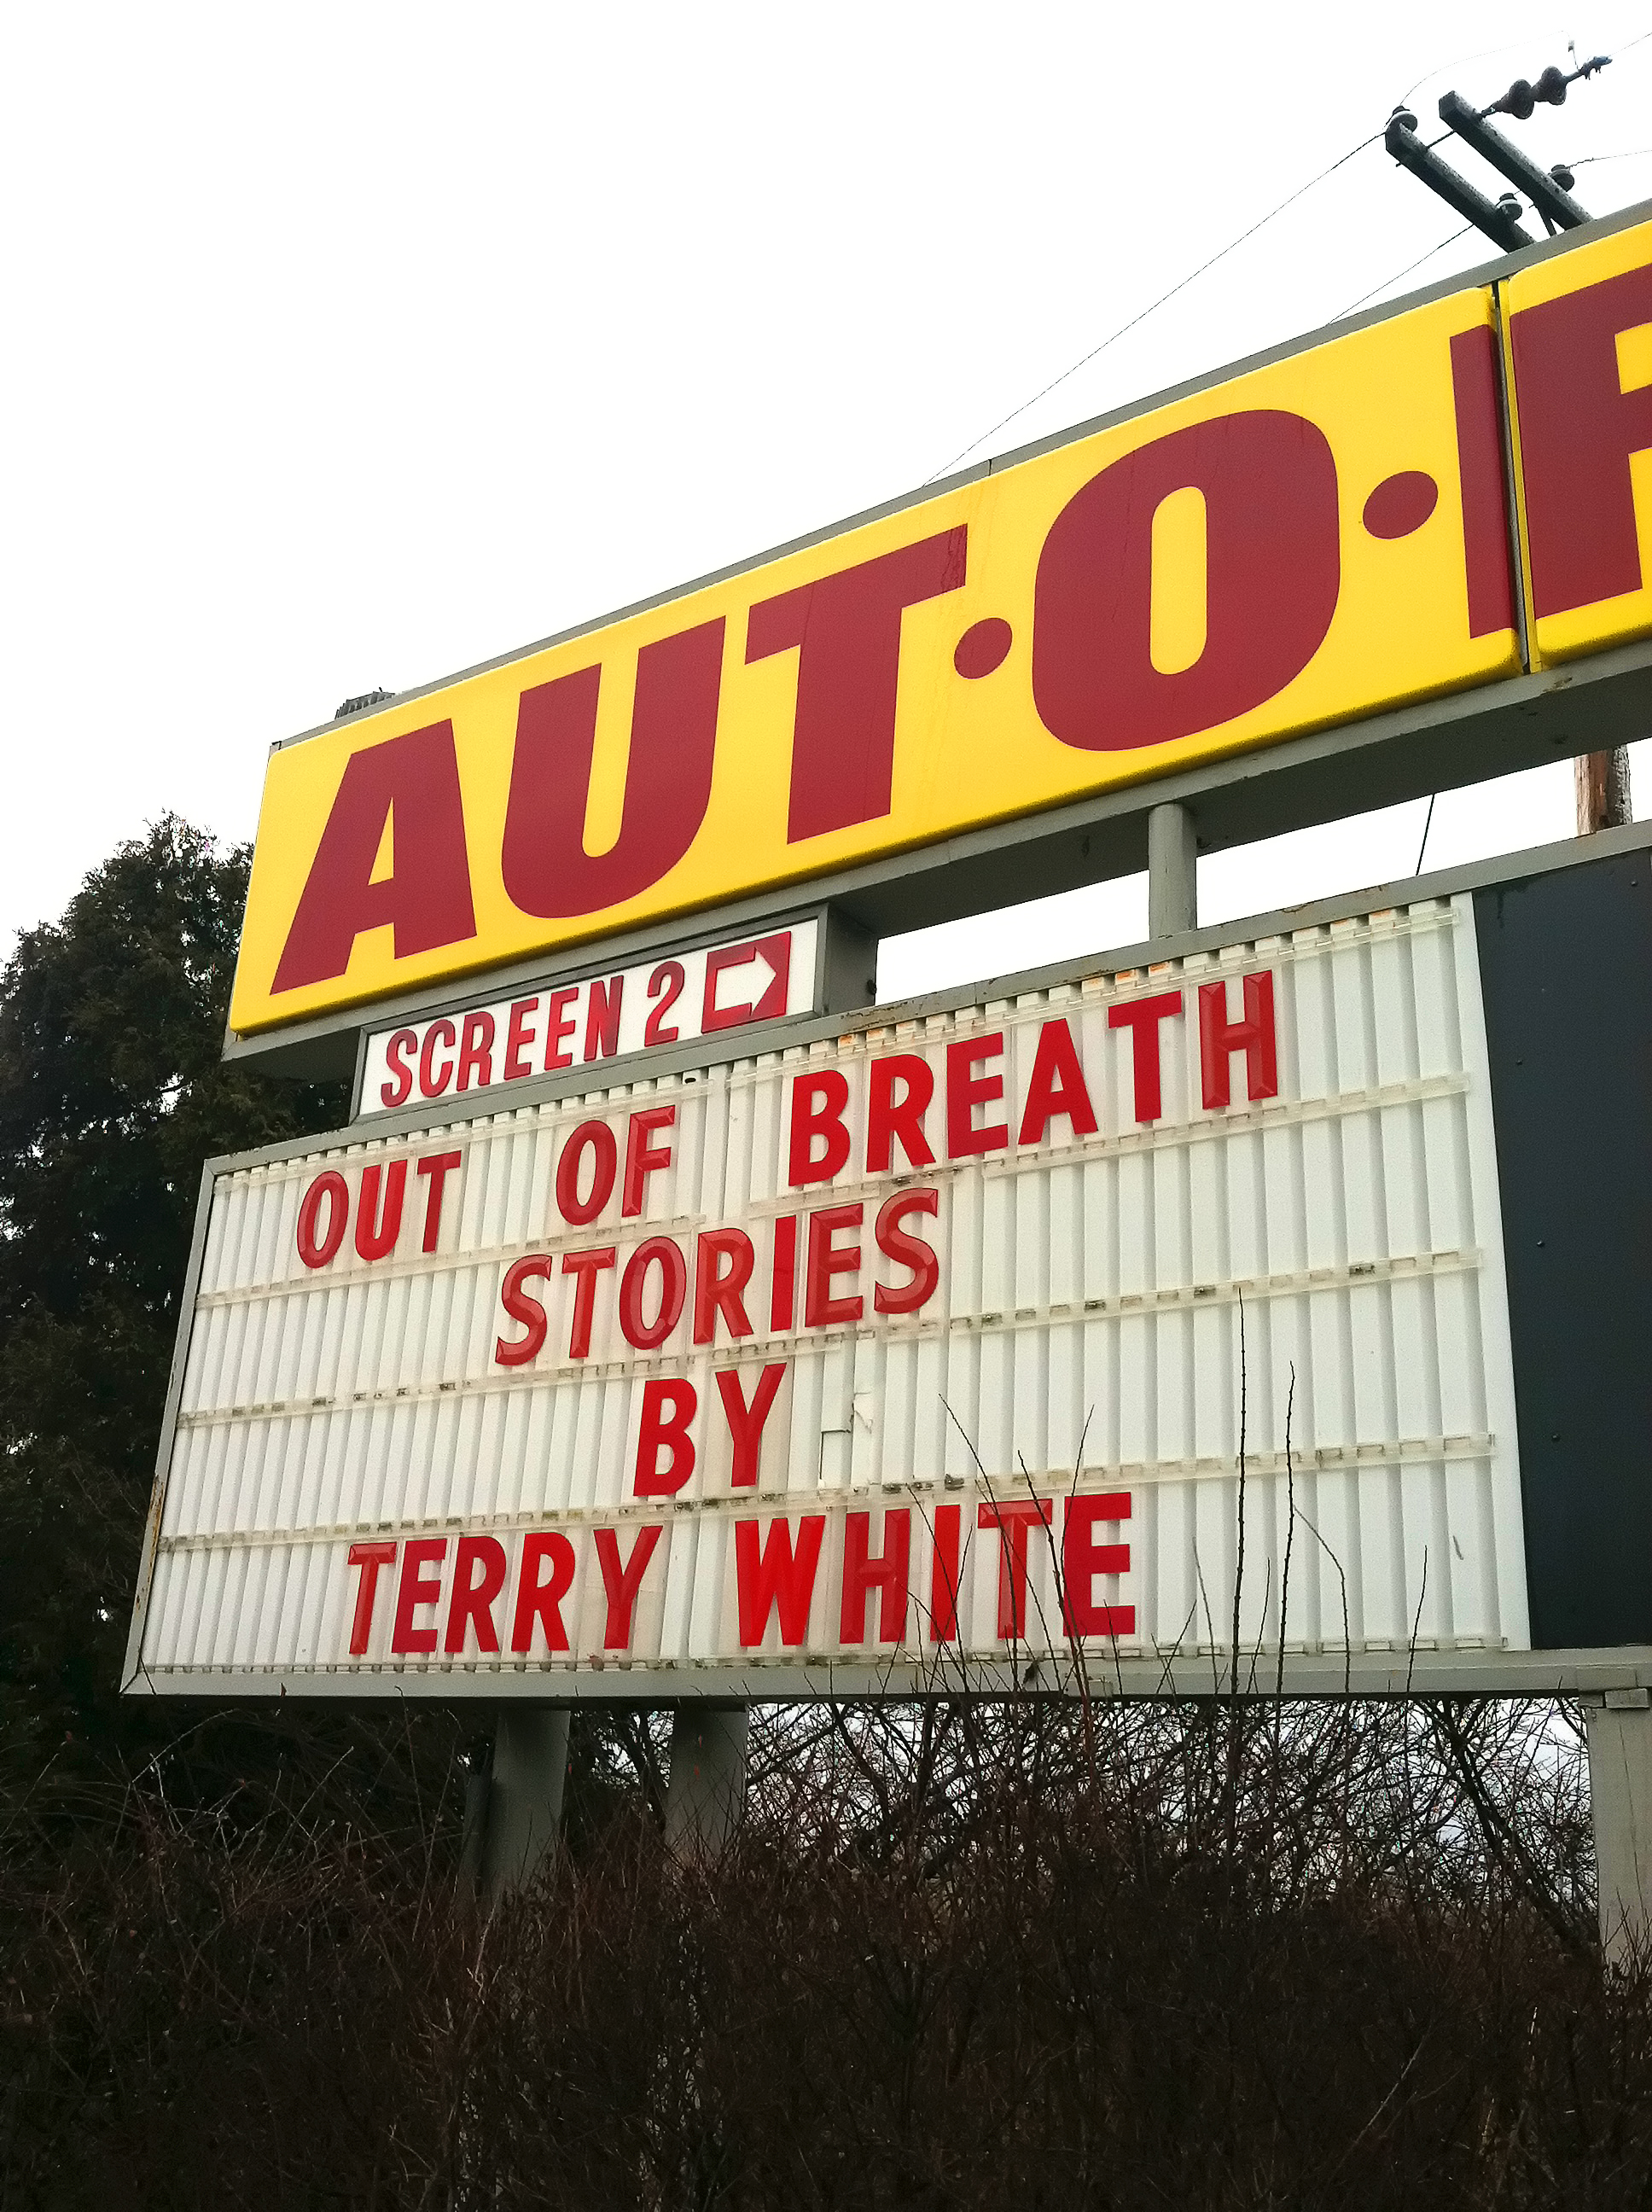 Out of Breath Stories by Terry White